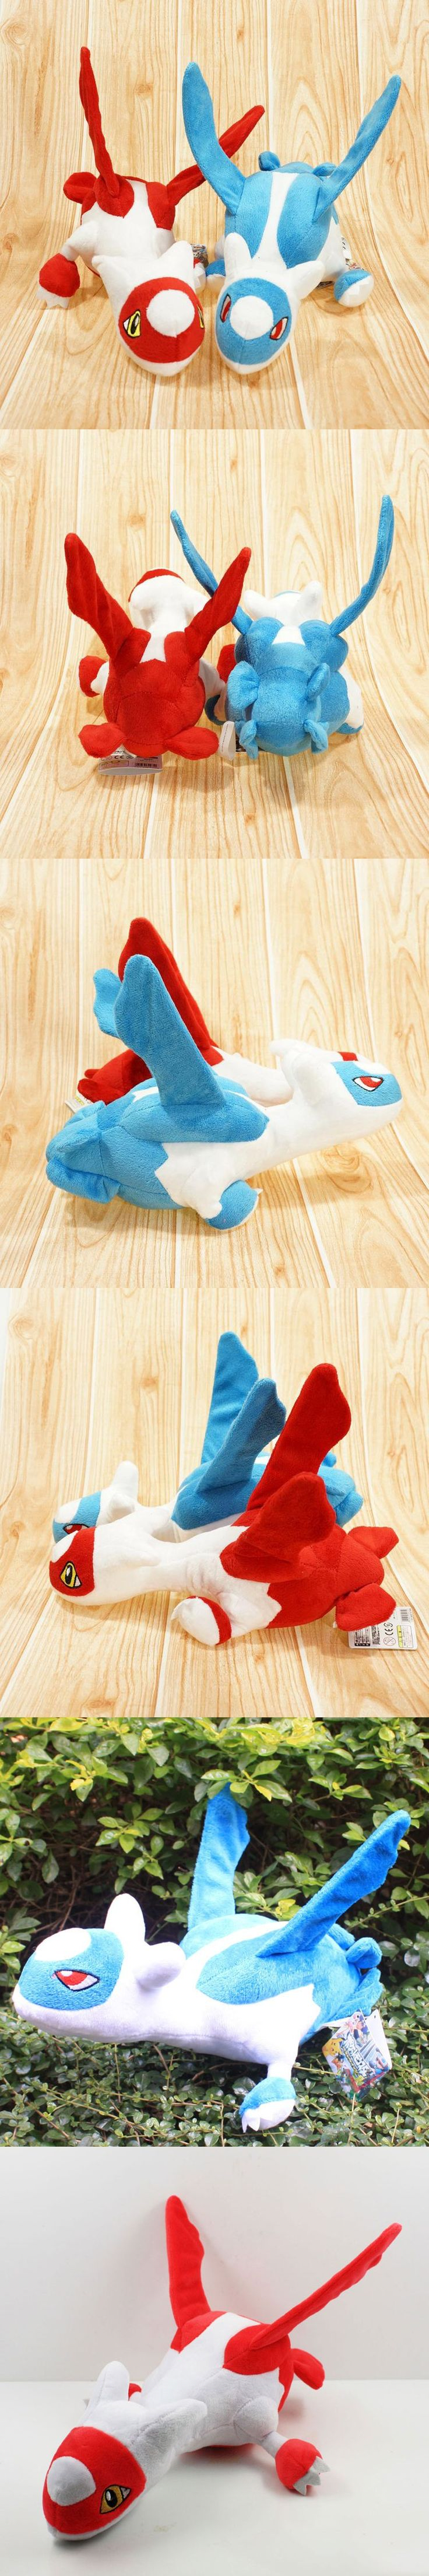 "New Arrival Pokemon Latias and Latios Stuffed Plush Toys Doll With Tag 12"" 30cm Pokemon Plush Toy Kids Toys Free Shipping"